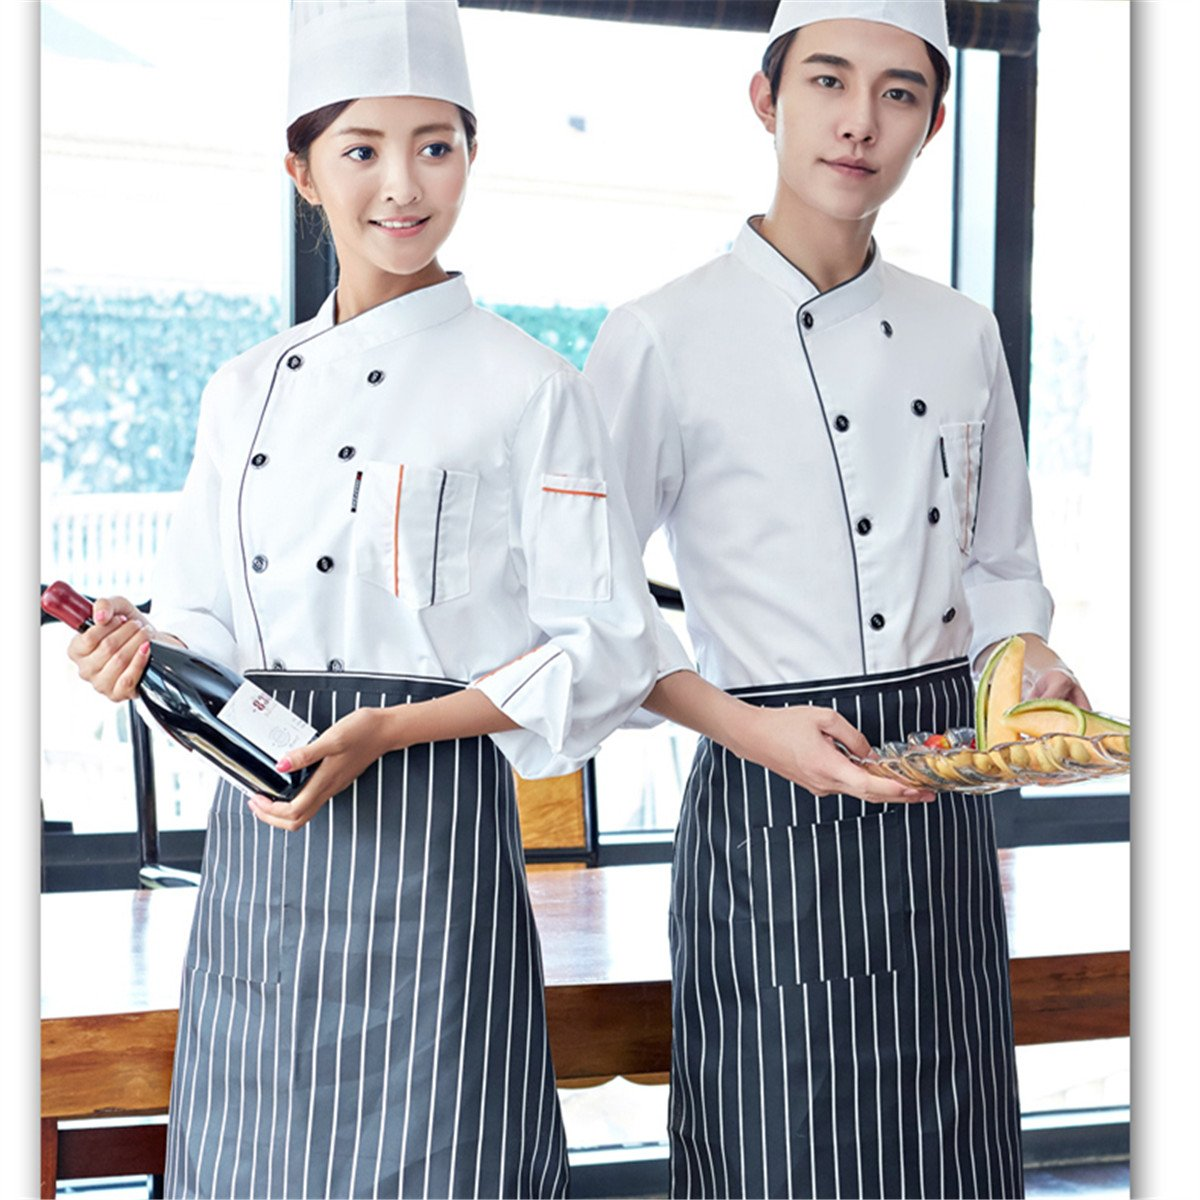 Unisex-Adult Chefs Uniform Long//Short Sleeves Double-Breasted Chef Coats for Mens Womens